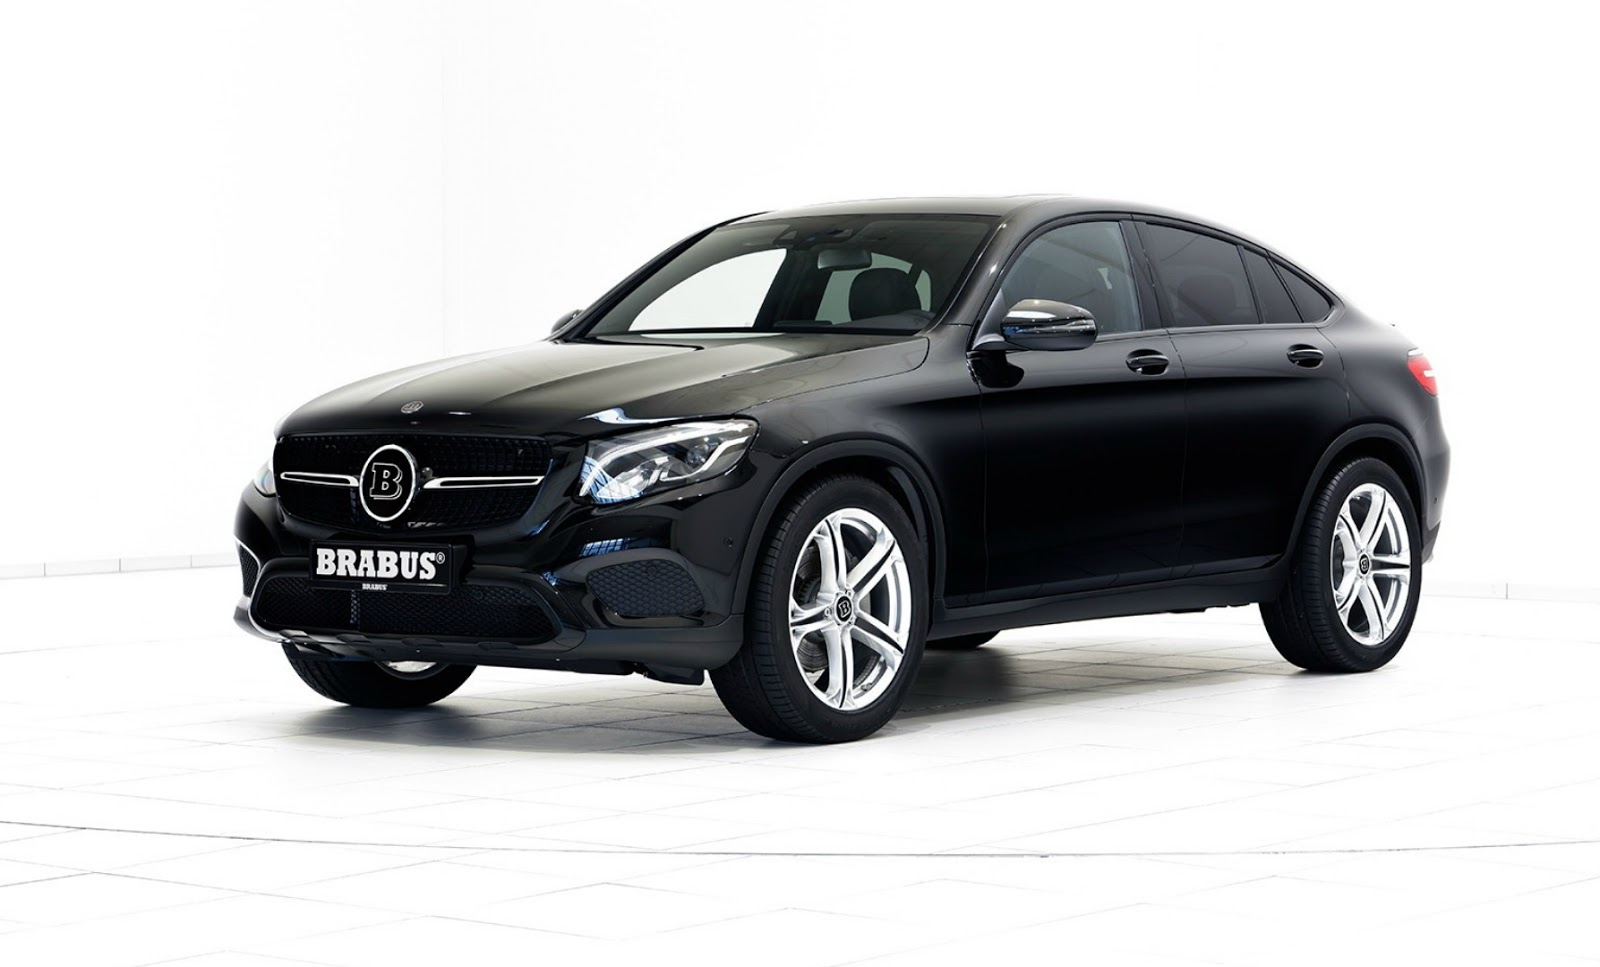 mercedes benz glc glc coupe by brabus are more appealing and powerful carz tuning. Black Bedroom Furniture Sets. Home Design Ideas